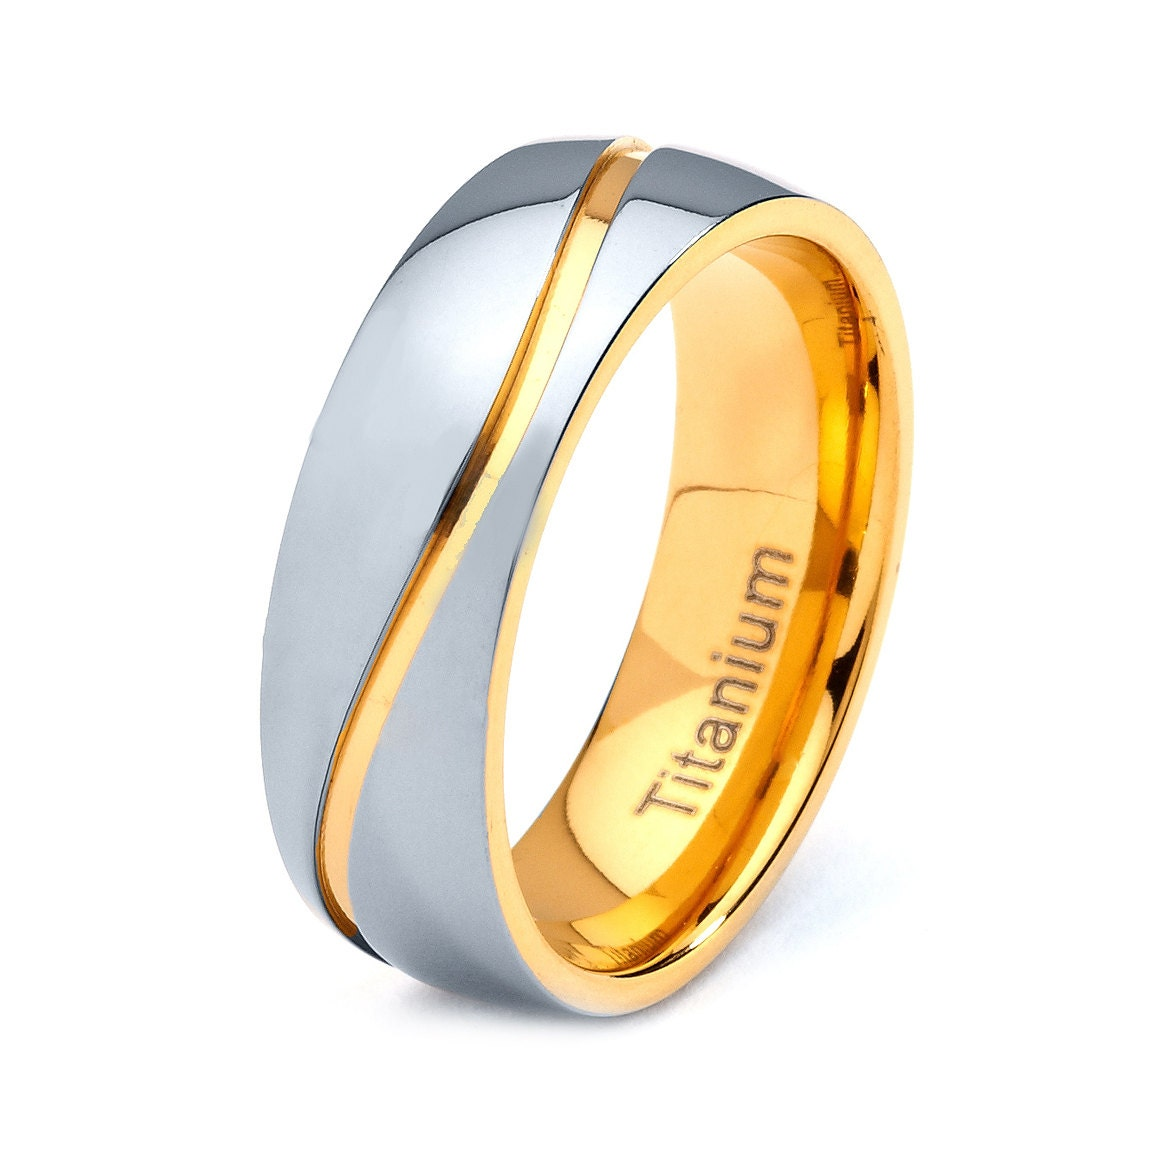 mens titanium wedding band ring 8mm 8 12 sizes 18k by. Black Bedroom Furniture Sets. Home Design Ideas